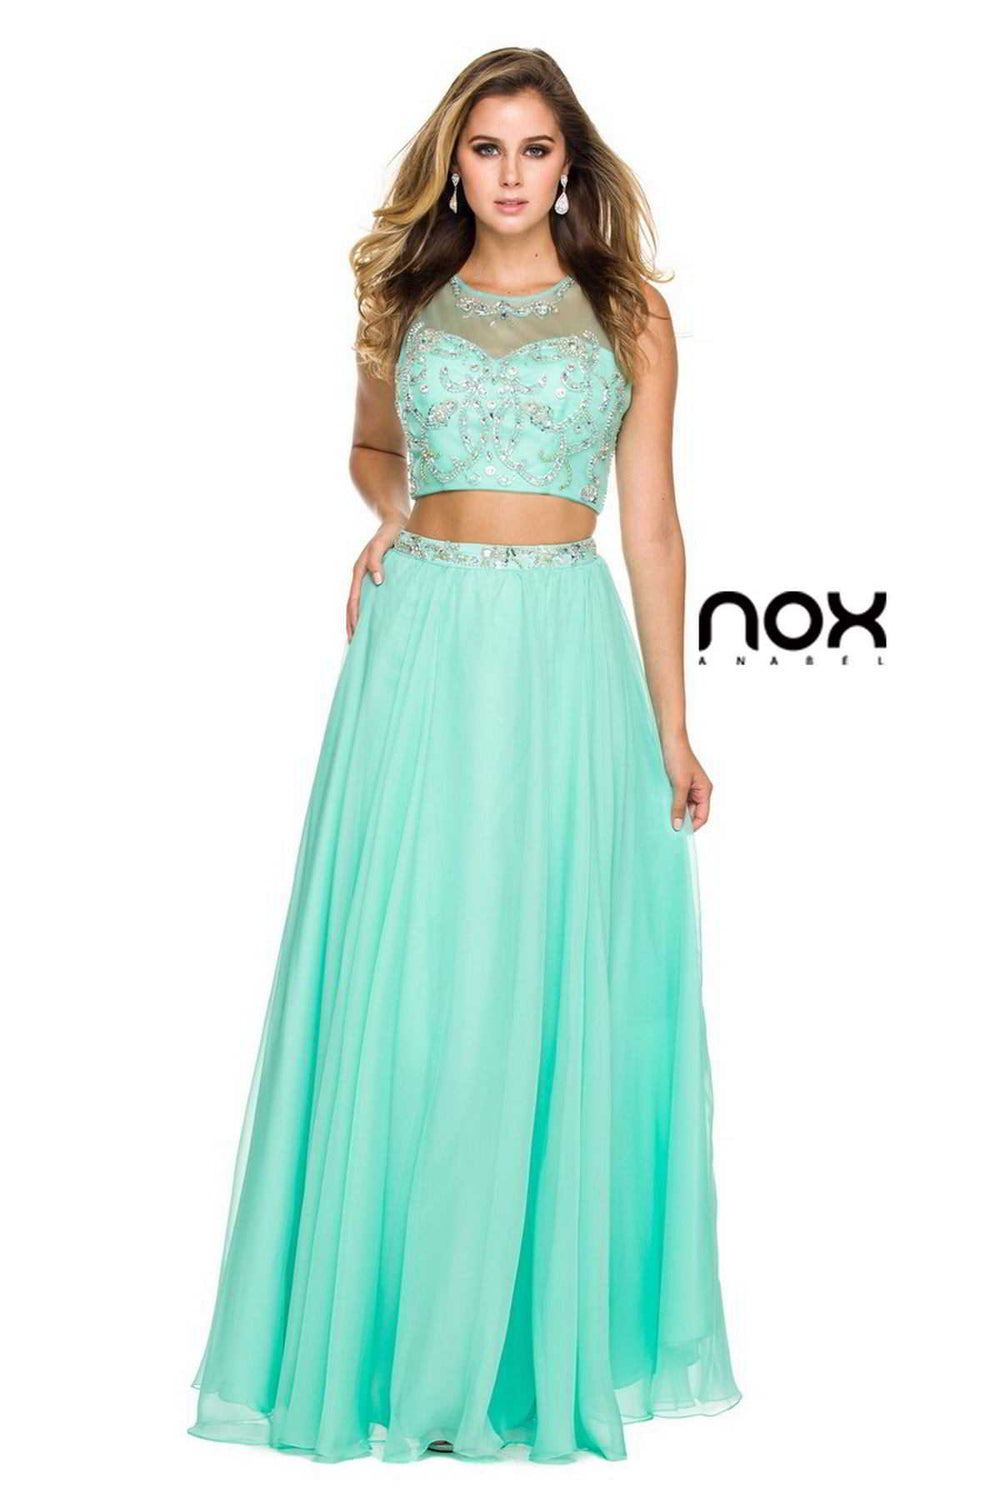 LONG CROP TOP PROM DRESS 8152 BYNARIANNA